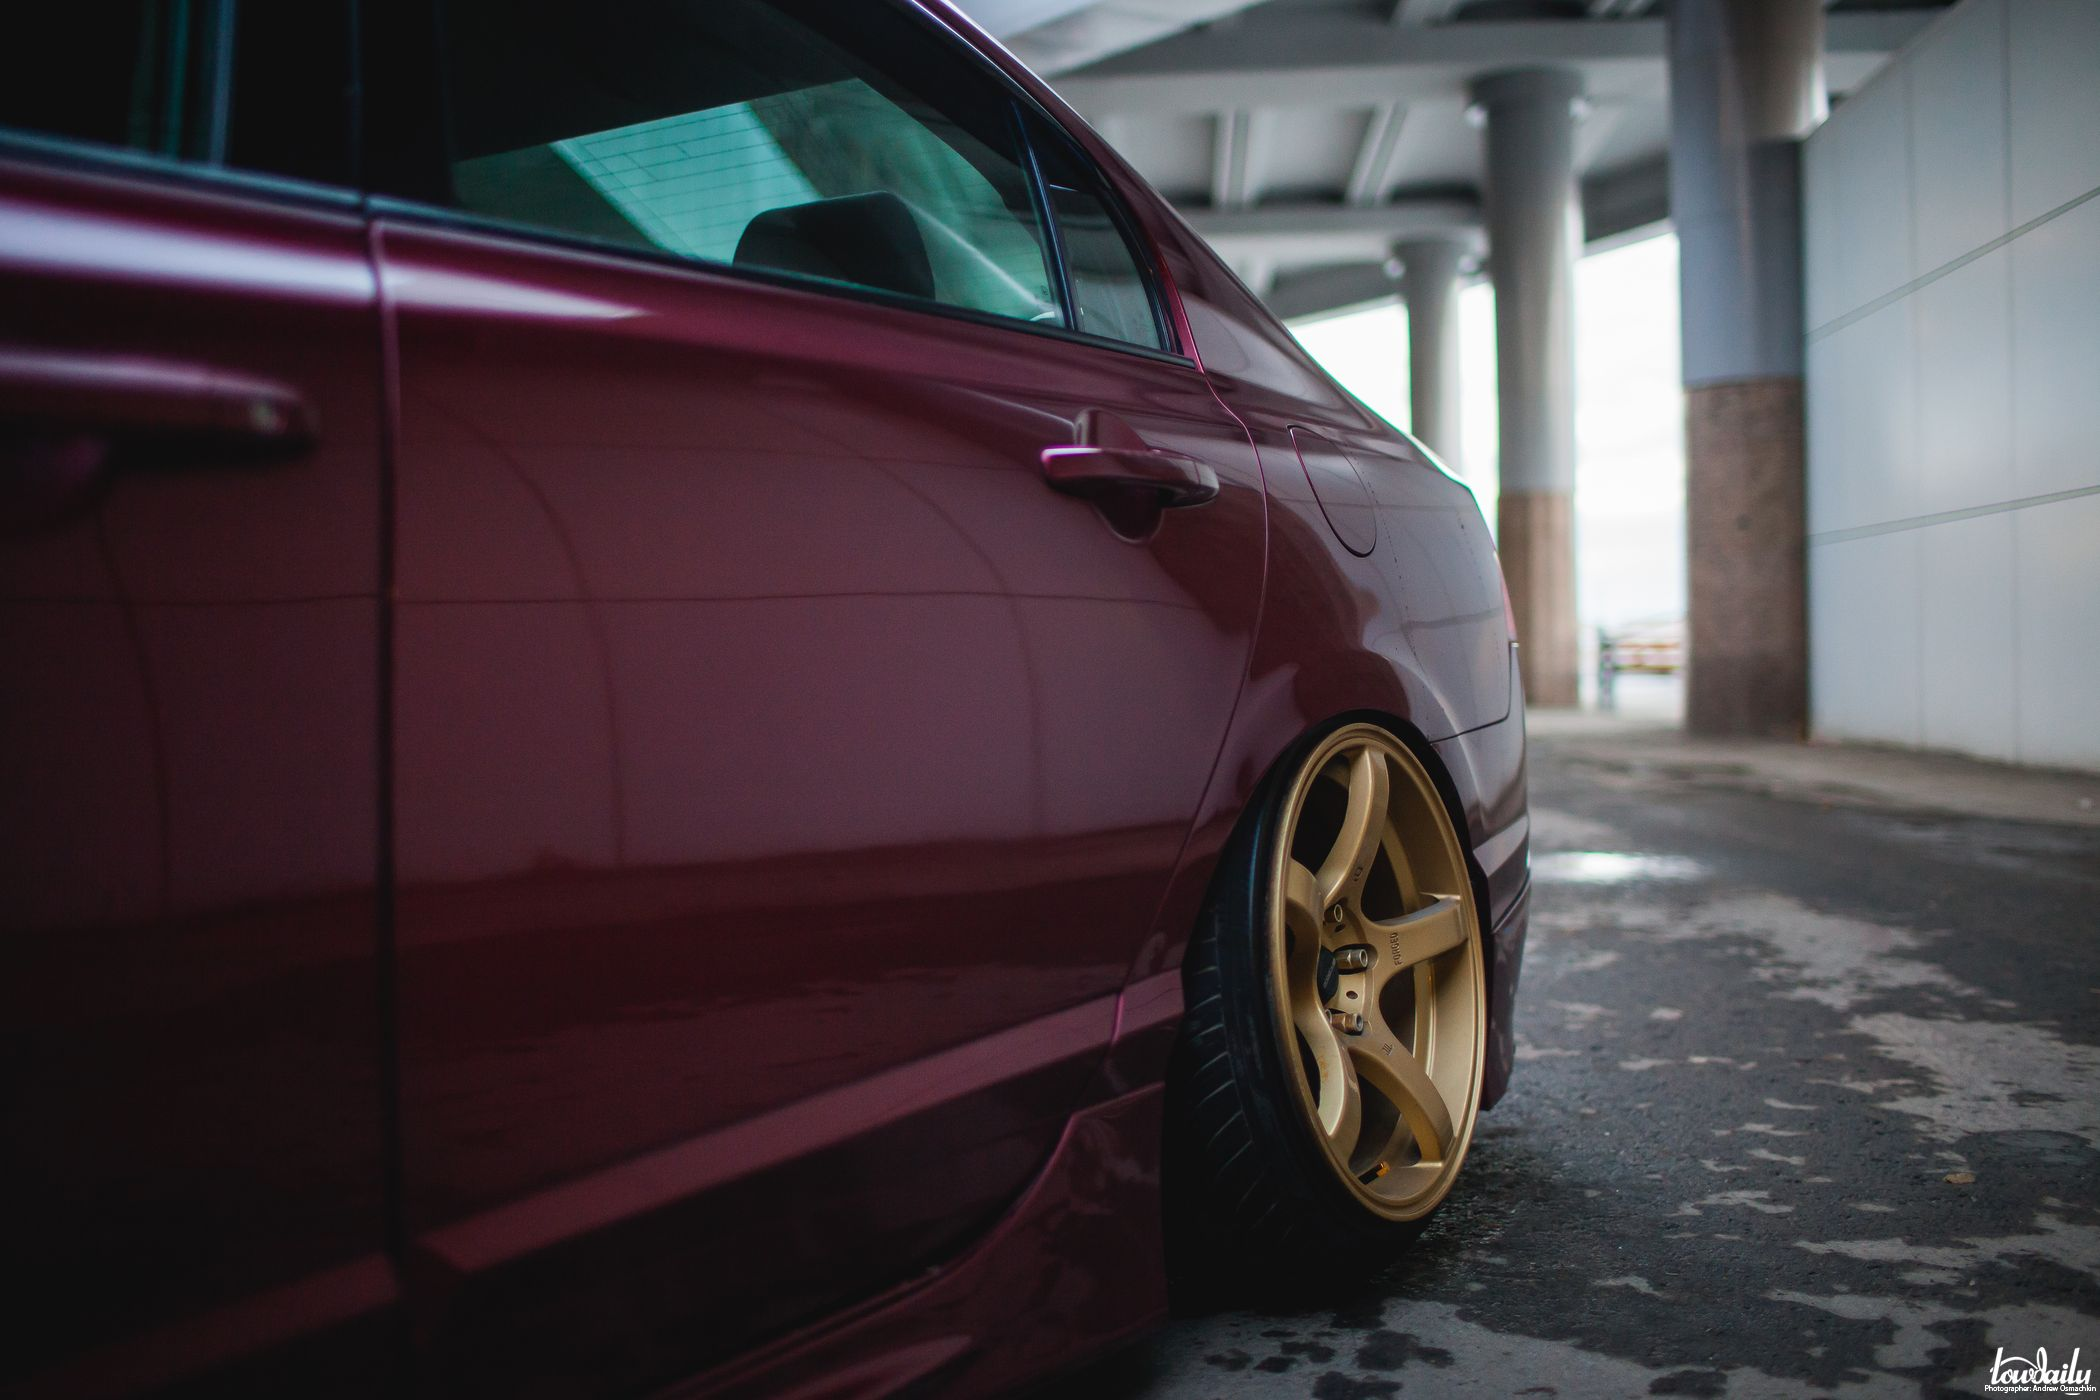 _Mg_5480_Honda_Civic